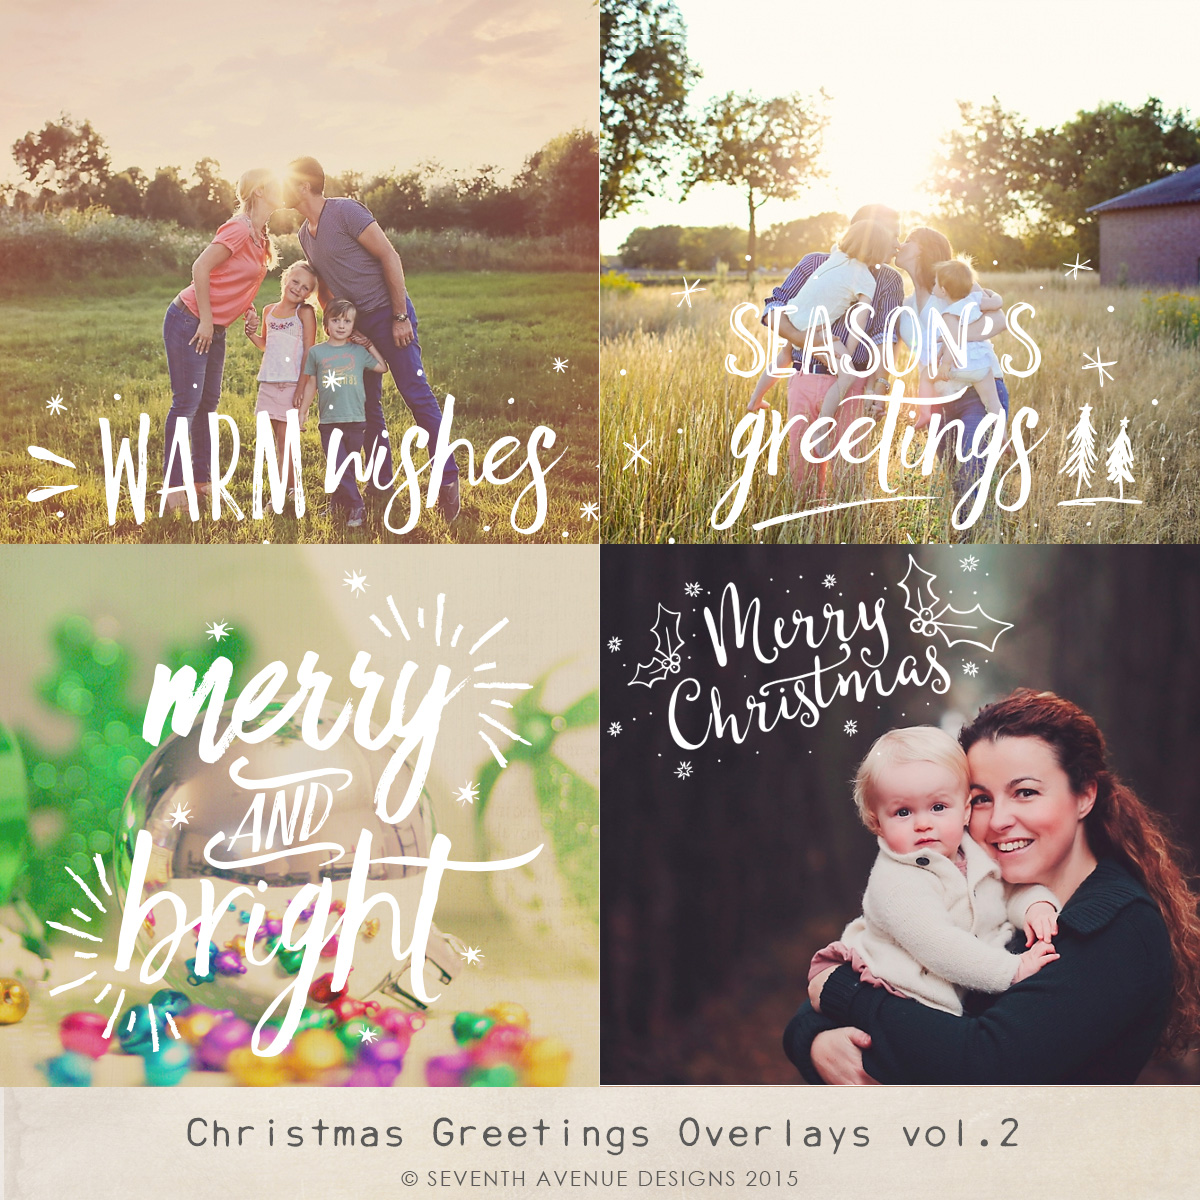 Christmas Greetings Overlays 2